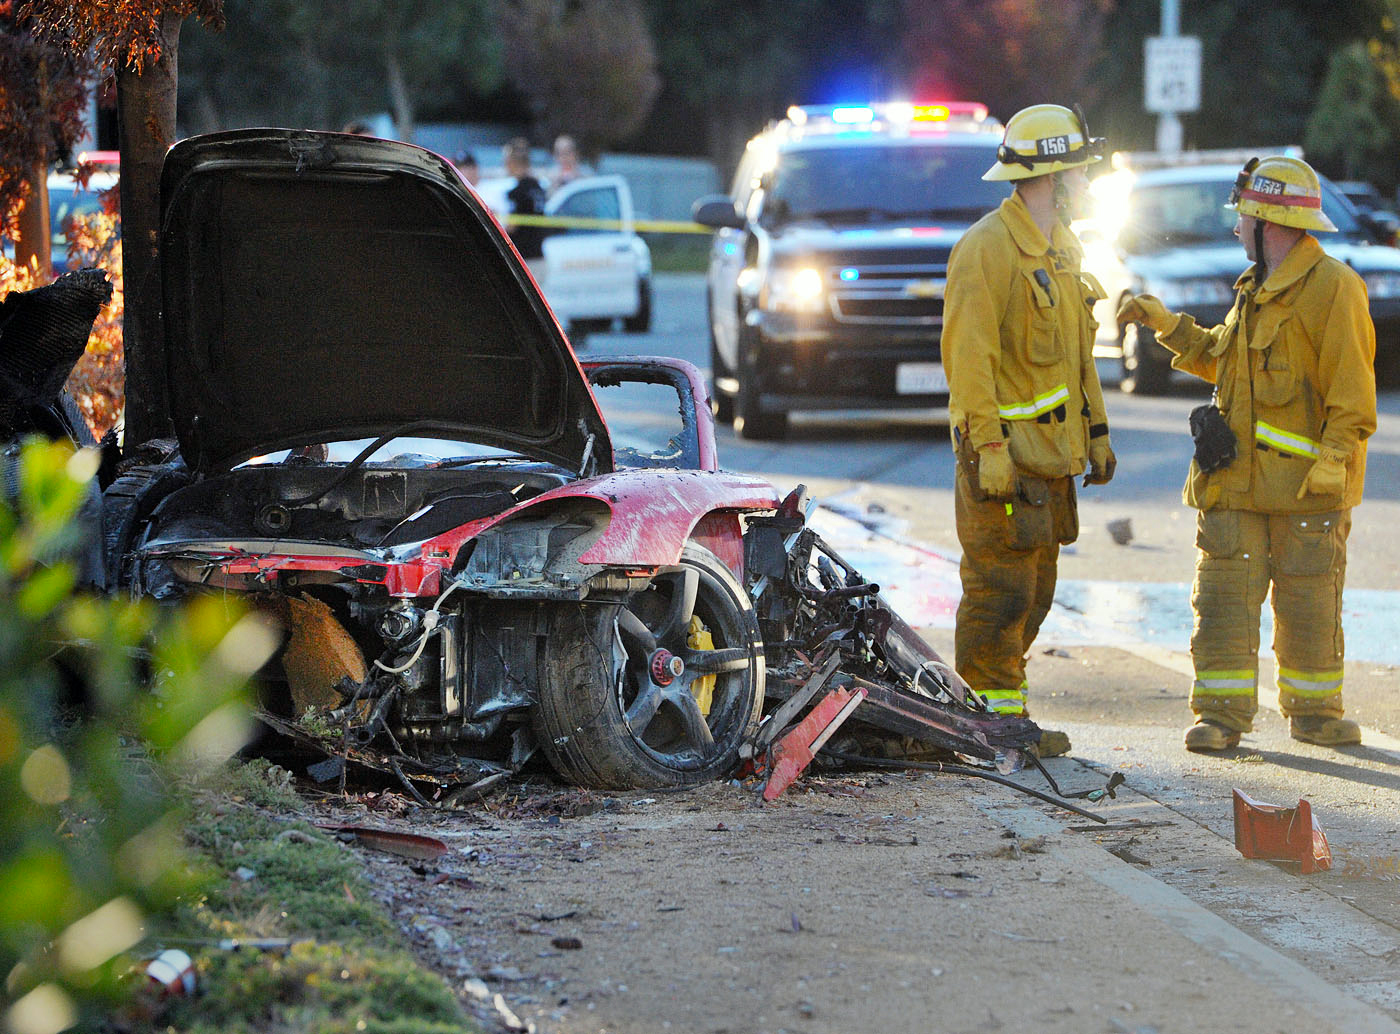 Firefighters work on Nov. 30, 2013 next to the wreckage of a Porsche that crashed into a light pole killing actor Paul Walker and Roger Rodas in Valencia, Ca.